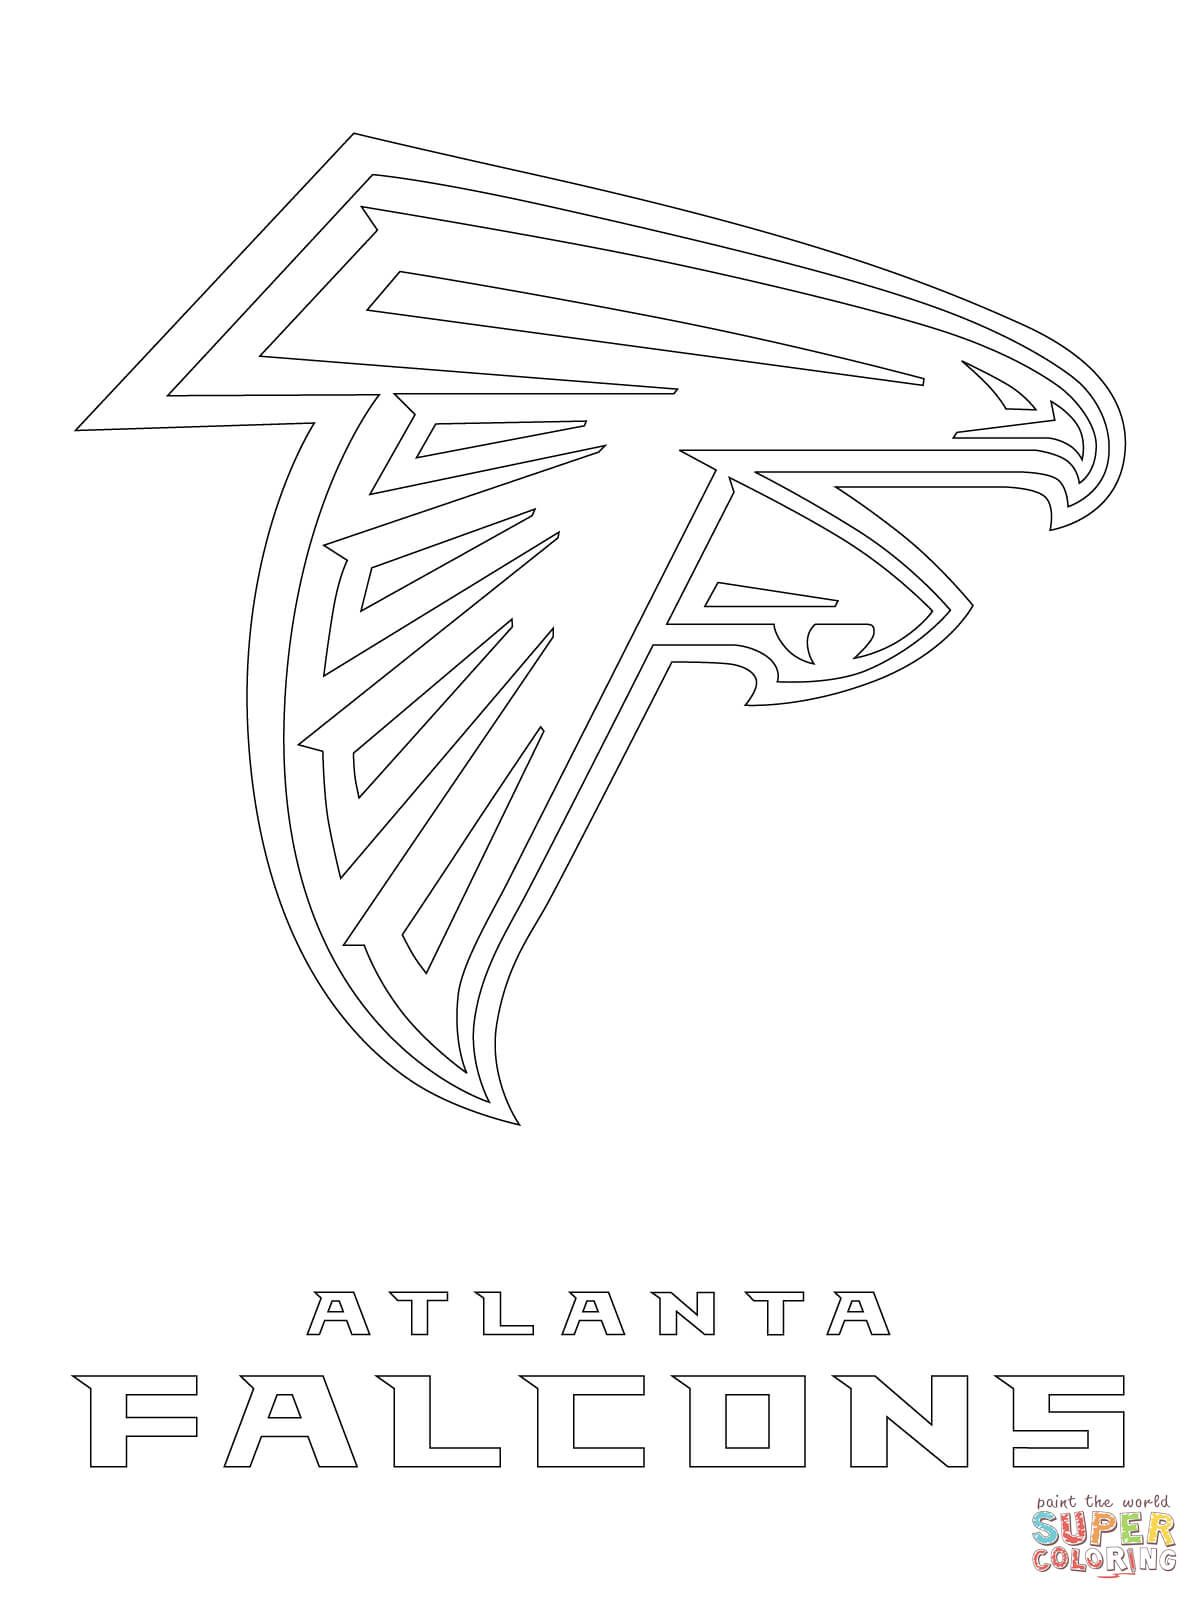 Atlanta Falcons Atlanta Falcons Stencil Atlanta Falcons Art